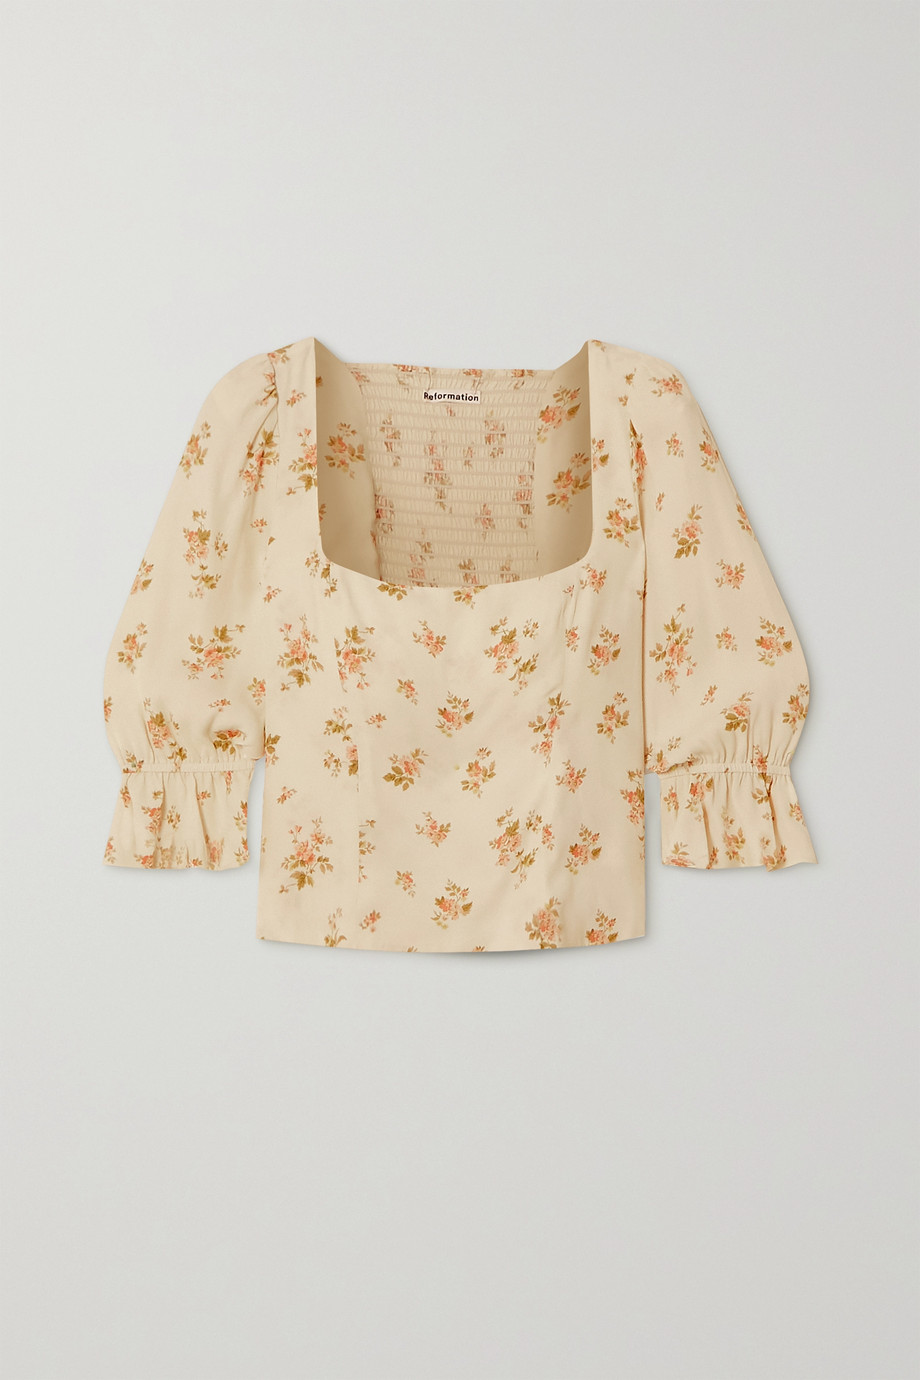 Reformation Ana ruffled floral-print crepe top